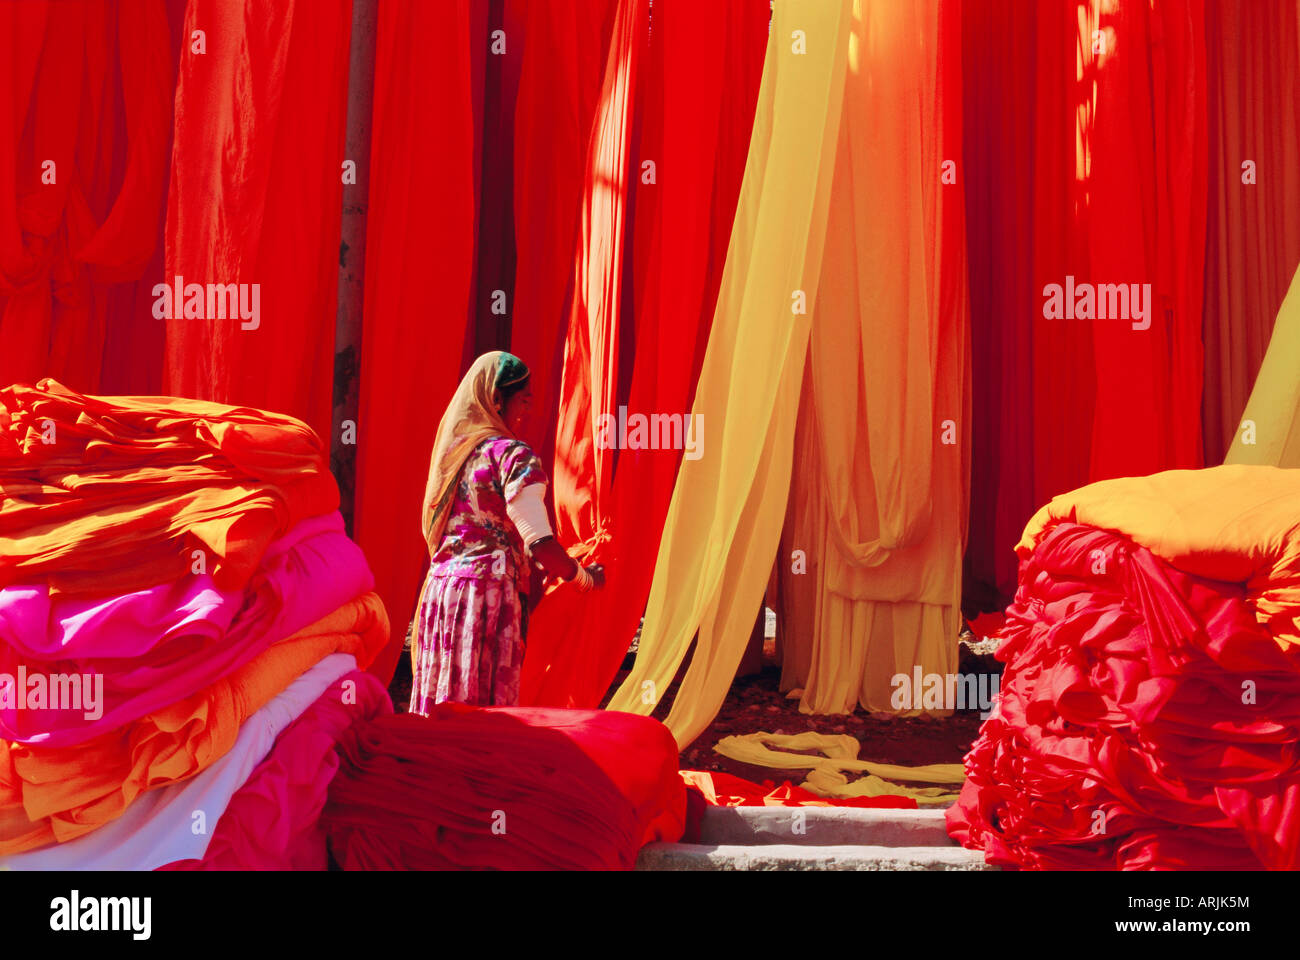 Sari garment factory, Rajasthan, India - Stock Image